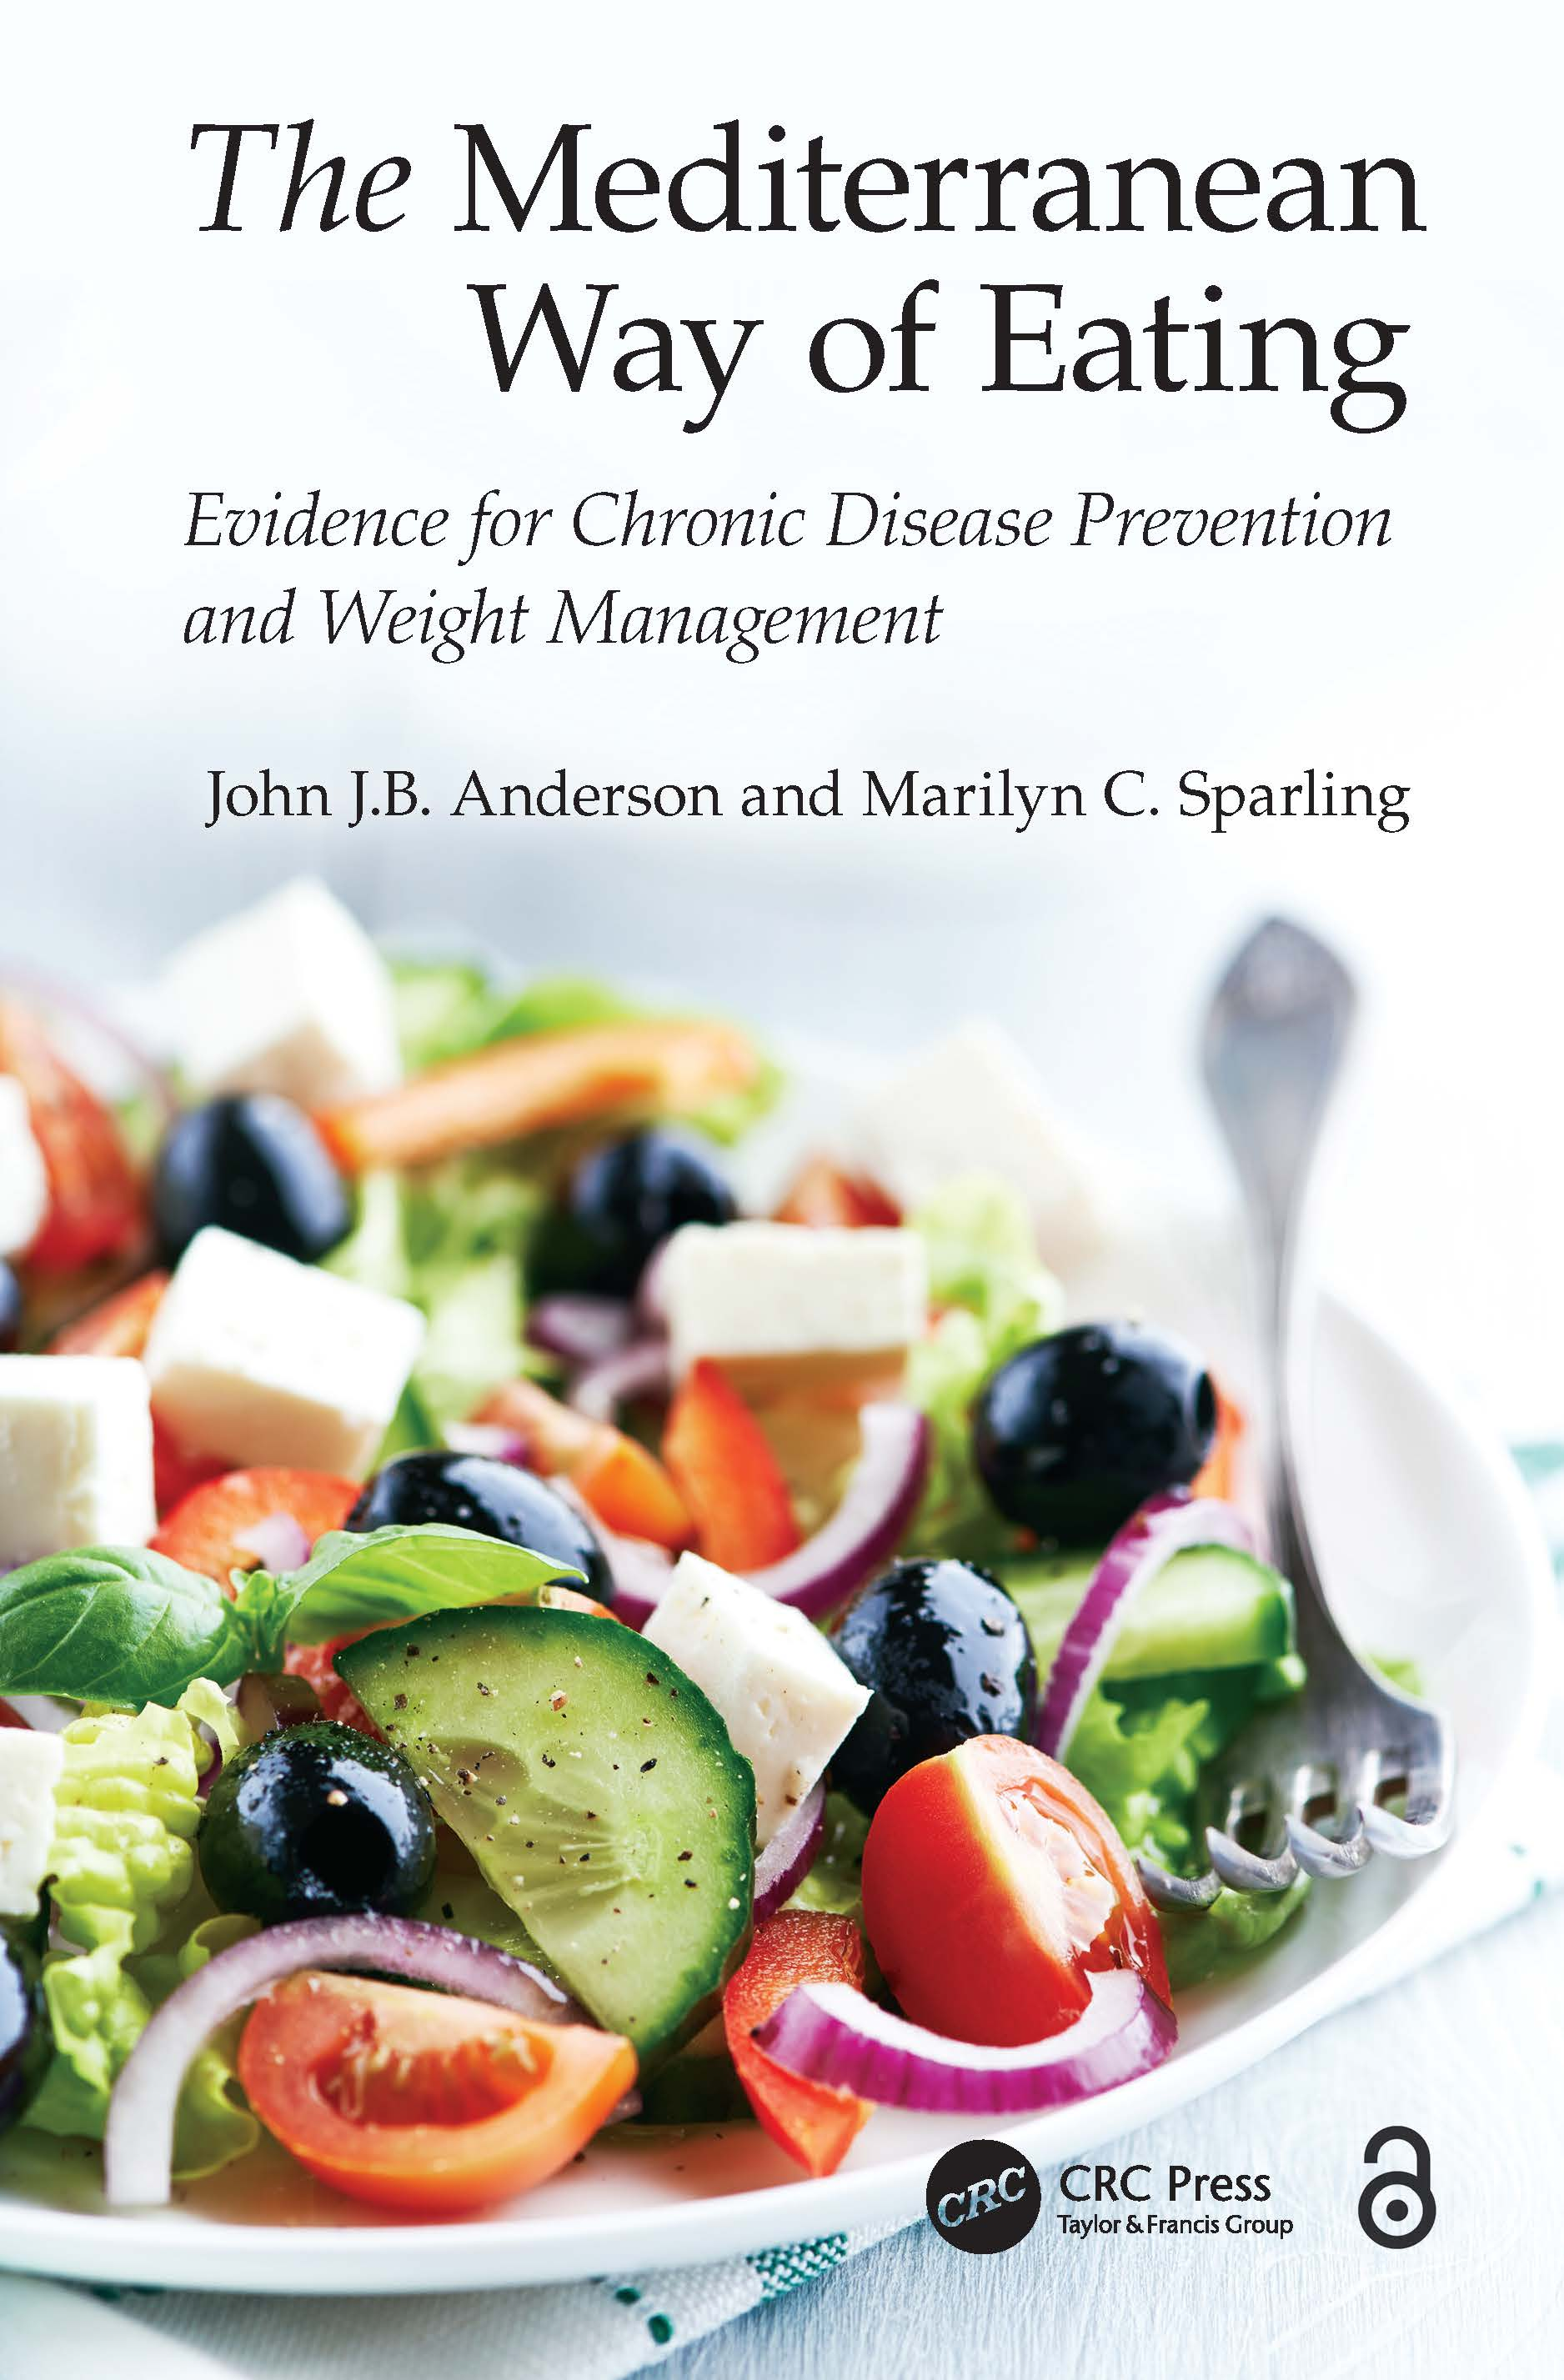 The Mediterranean Way of Eating: Evidence for Chronic Disease Prevention and Weight Management book cover